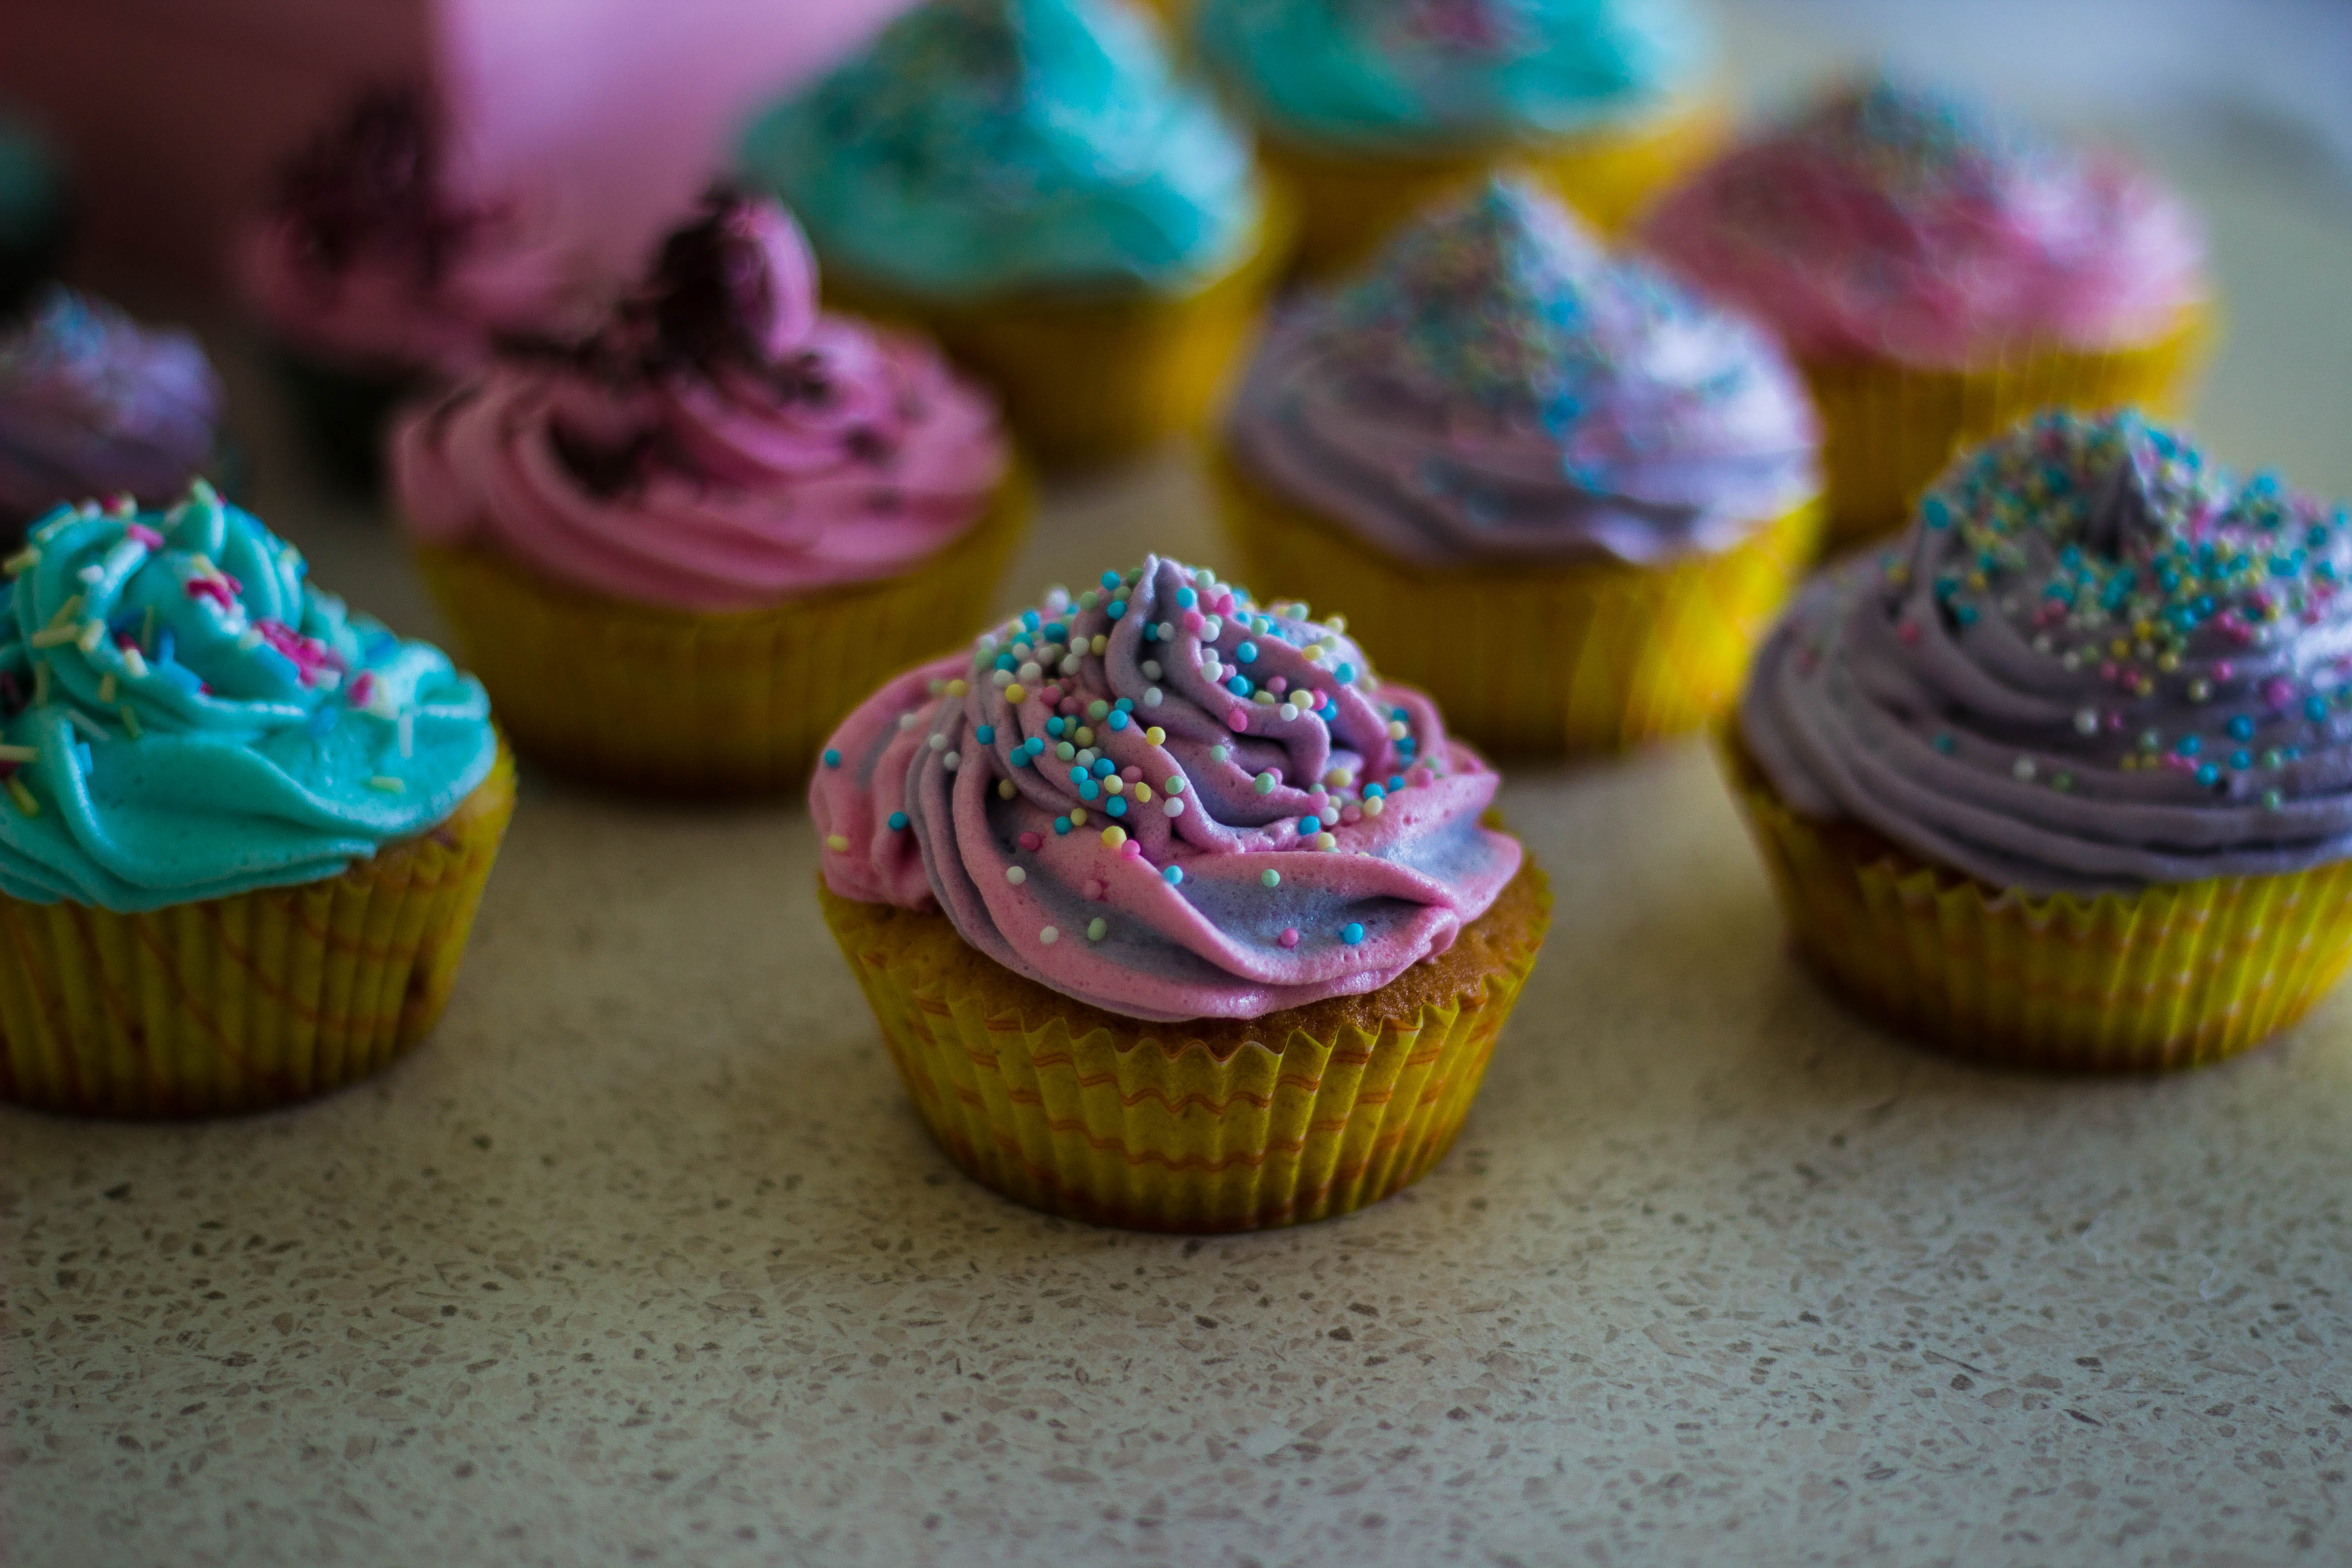 Free stock photo of colorful, colourful, cupcakes, baked goods